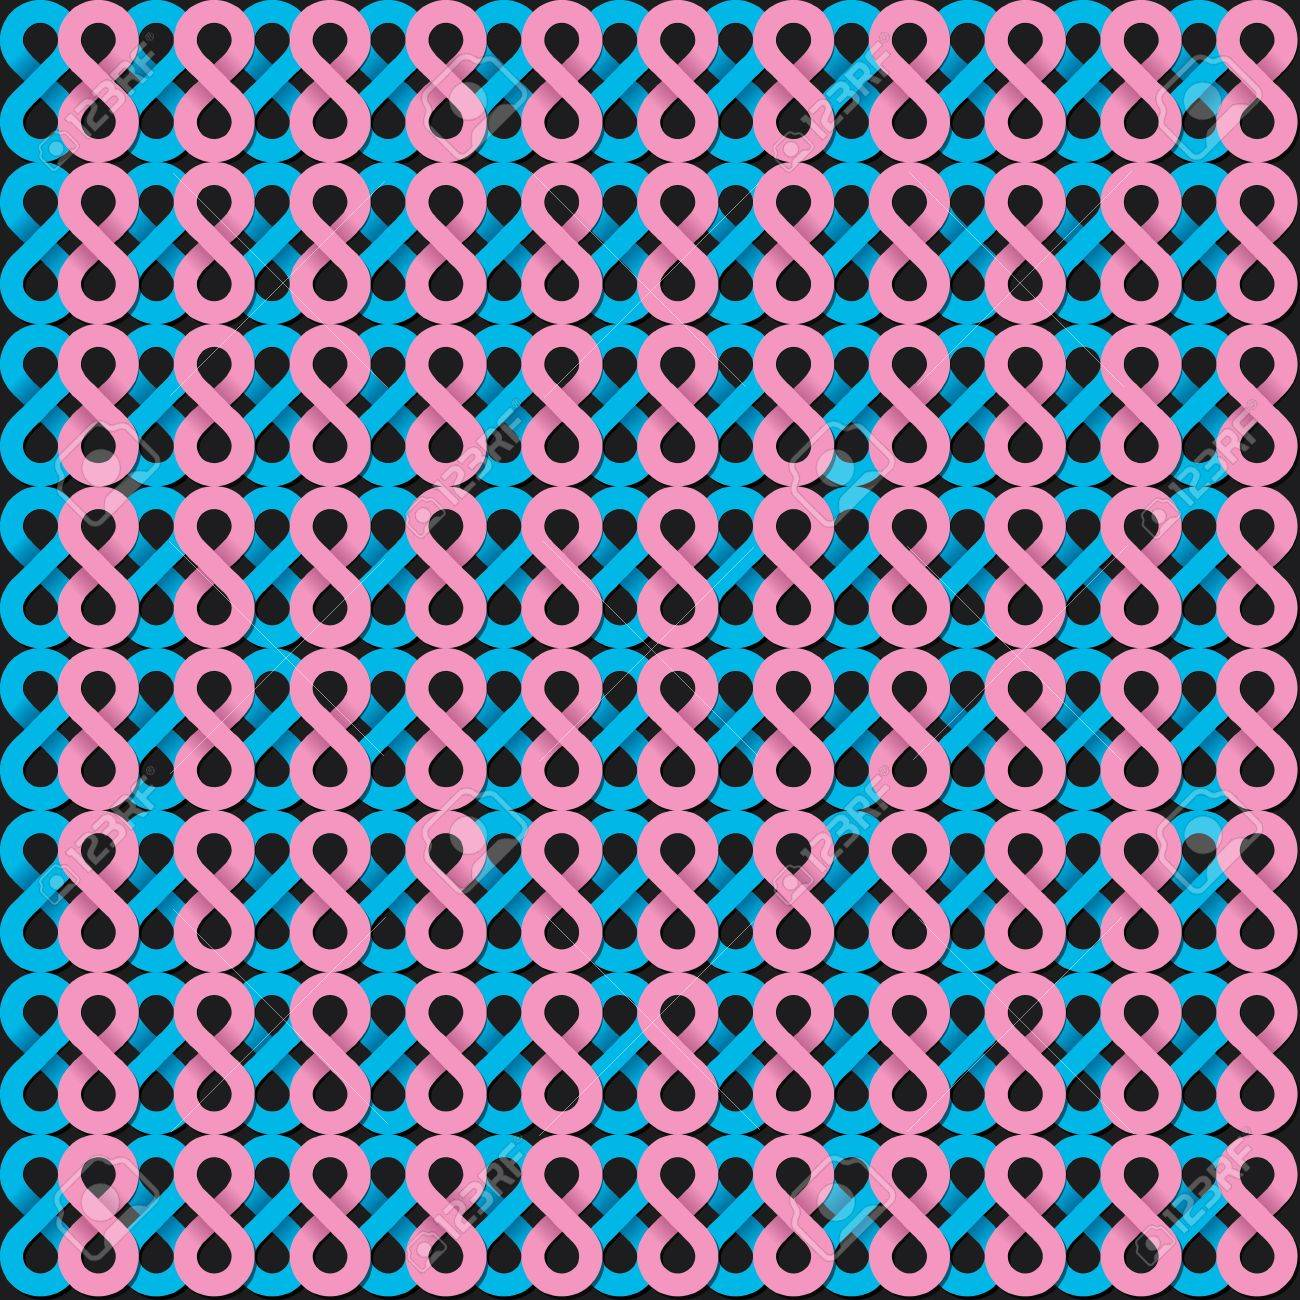 infinity shape pink and blue pattern Stock Vector - 18332355